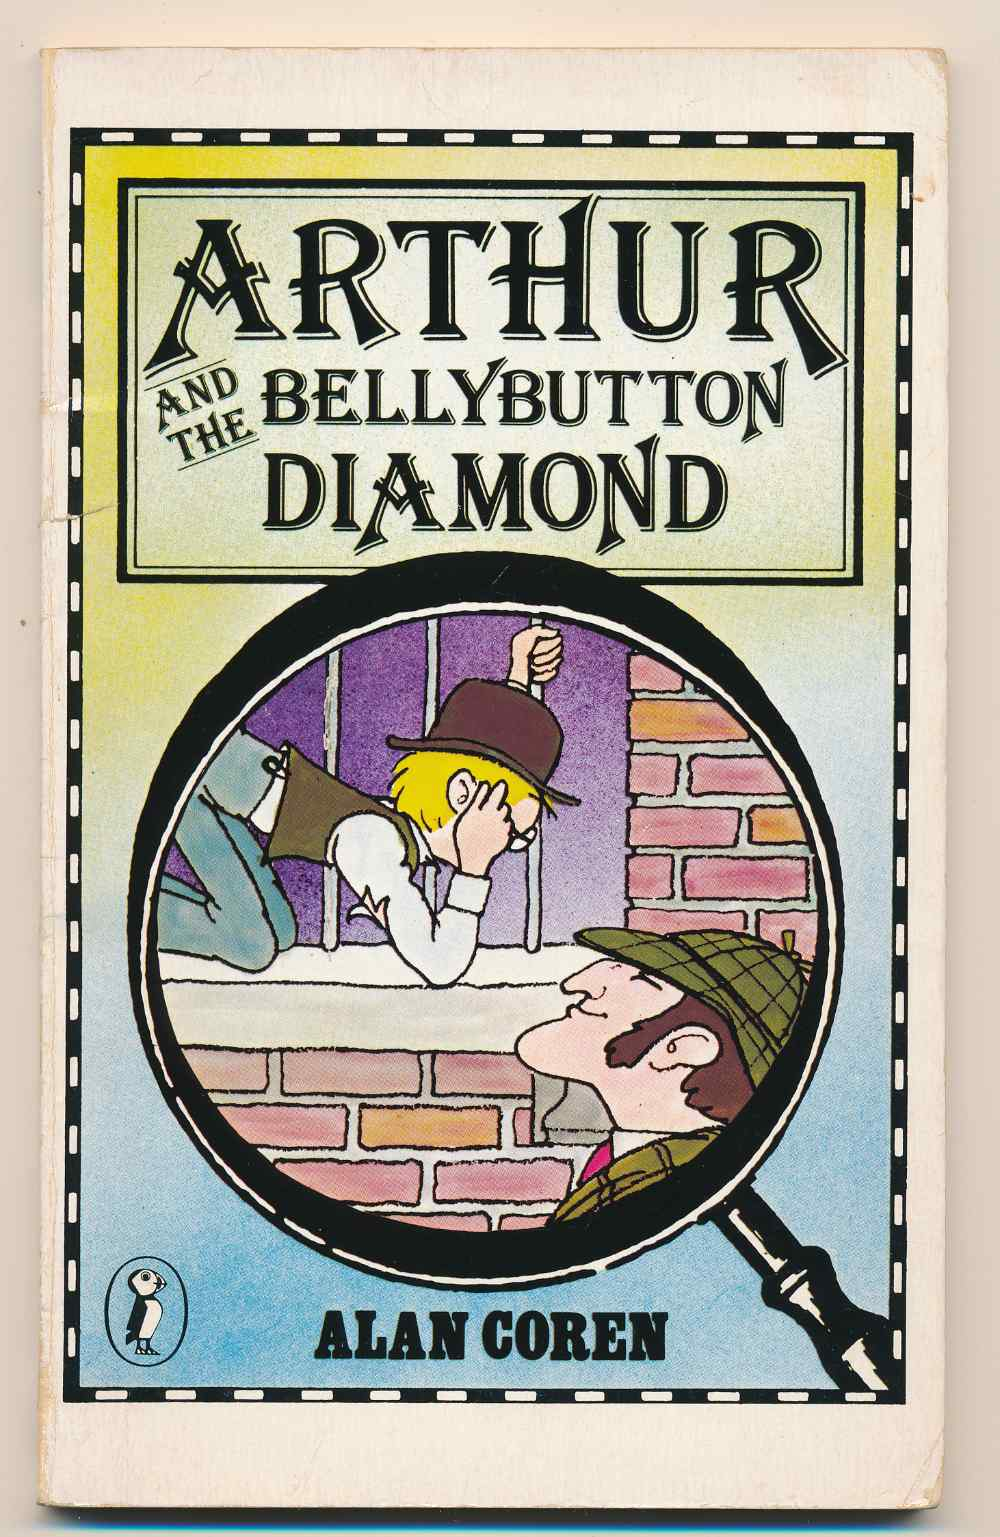 Arthur and the bellybutton diamond